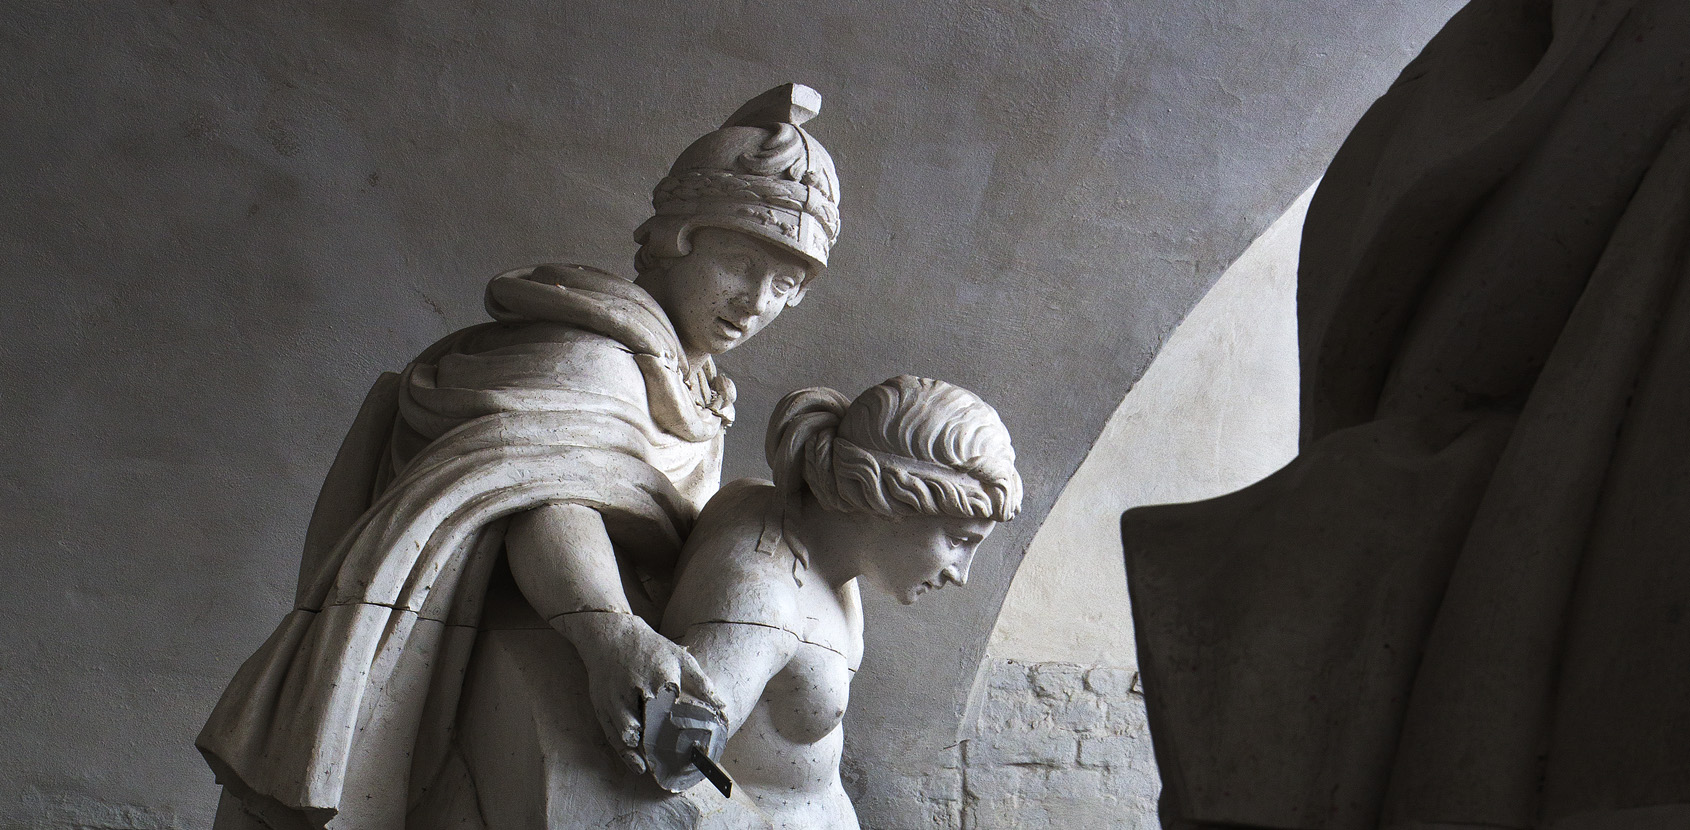 Sculptures in the Lapidarium of Kings photo Thorkild Jensen